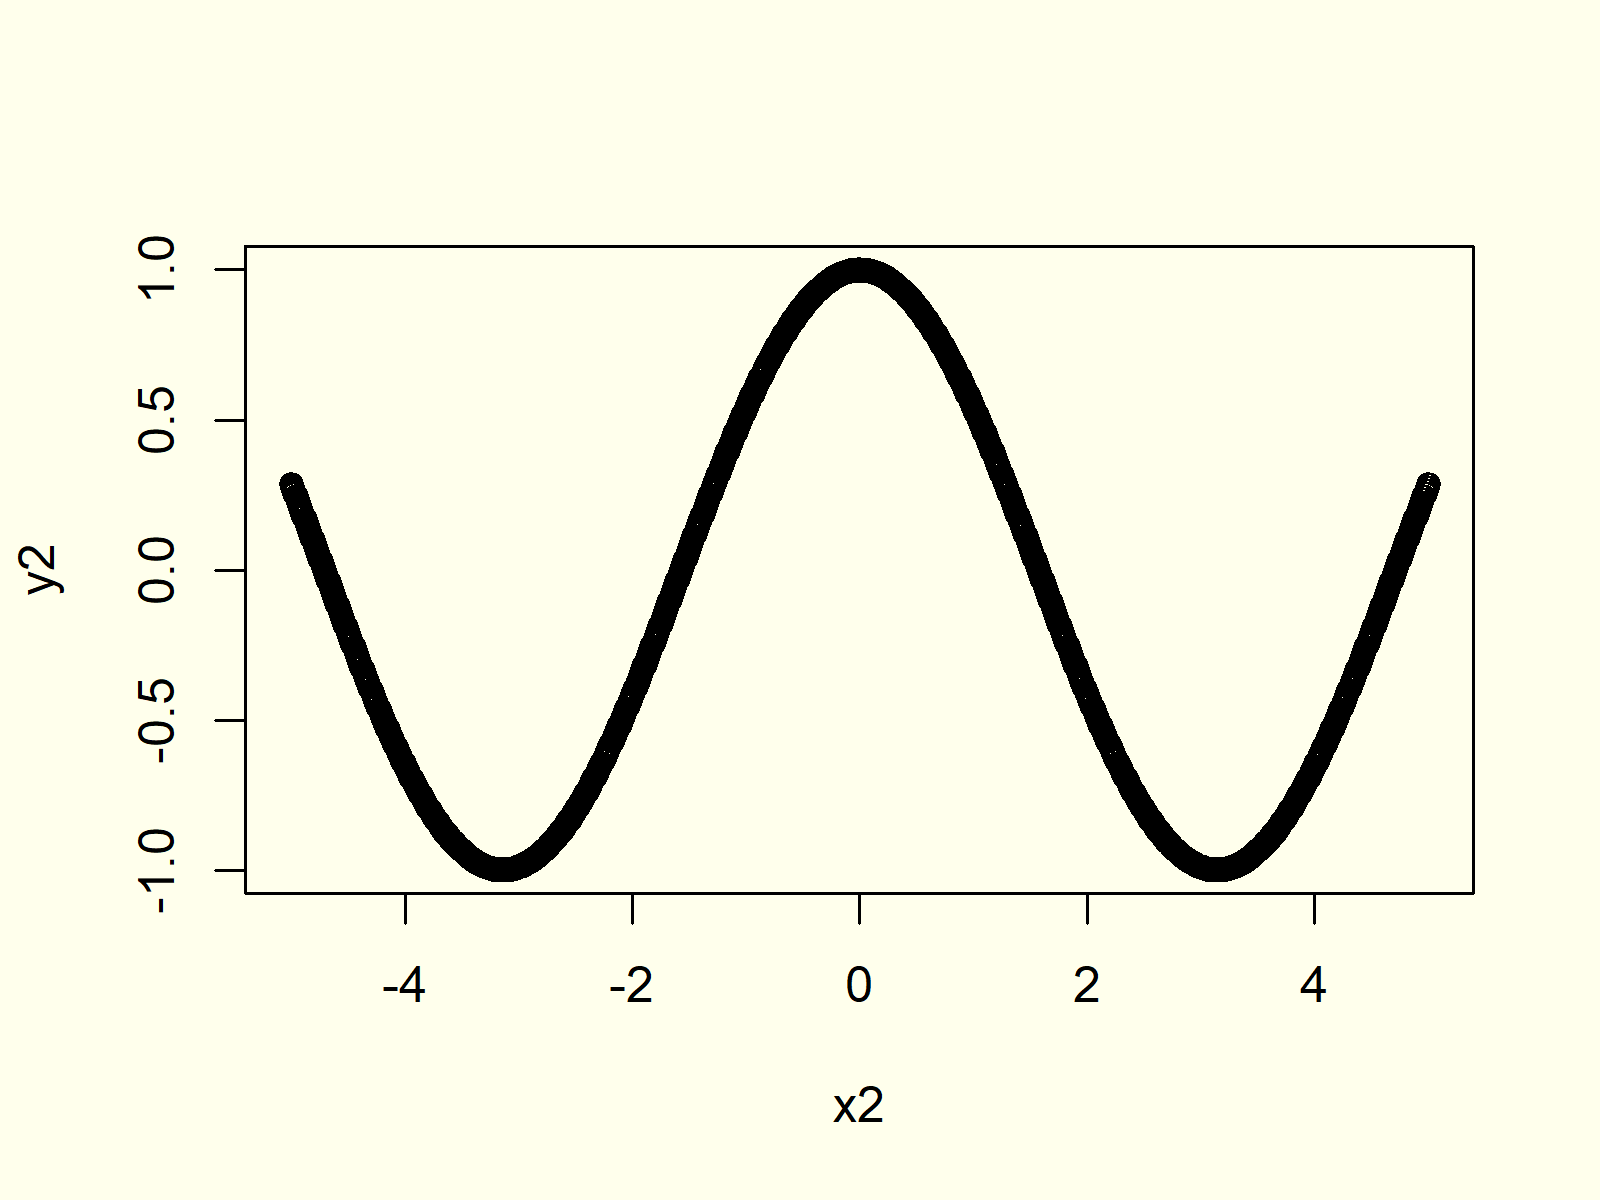 Eighth example for plot function in r